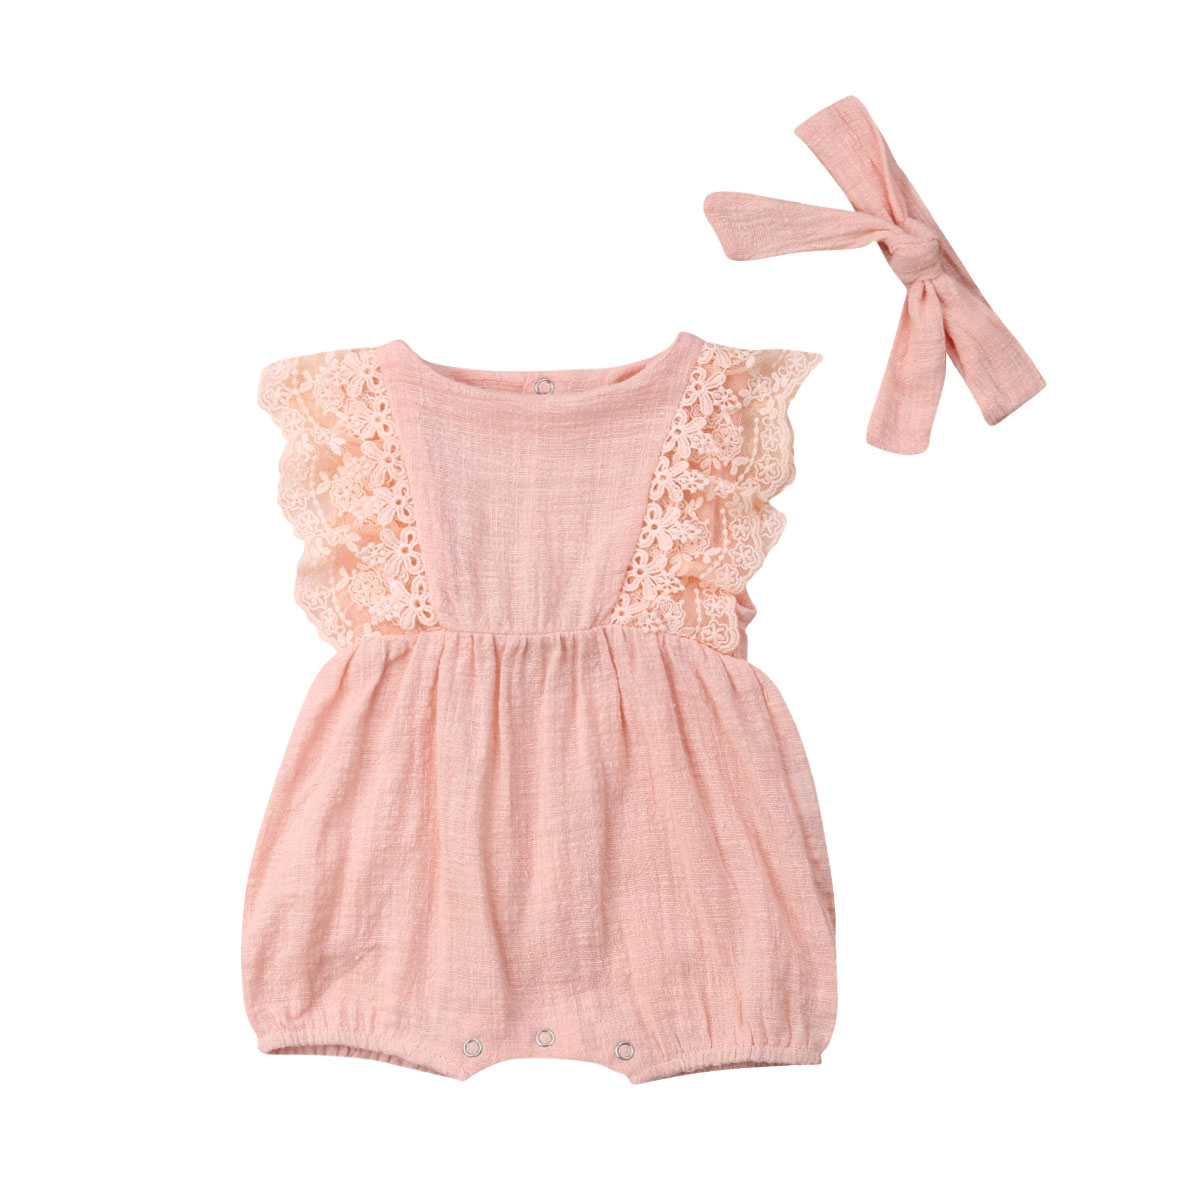 Newborn Infant Baby Girl Lace Romper Backless Jumpsuit Cute Summer BabyOutfit Sunsuit Clothes